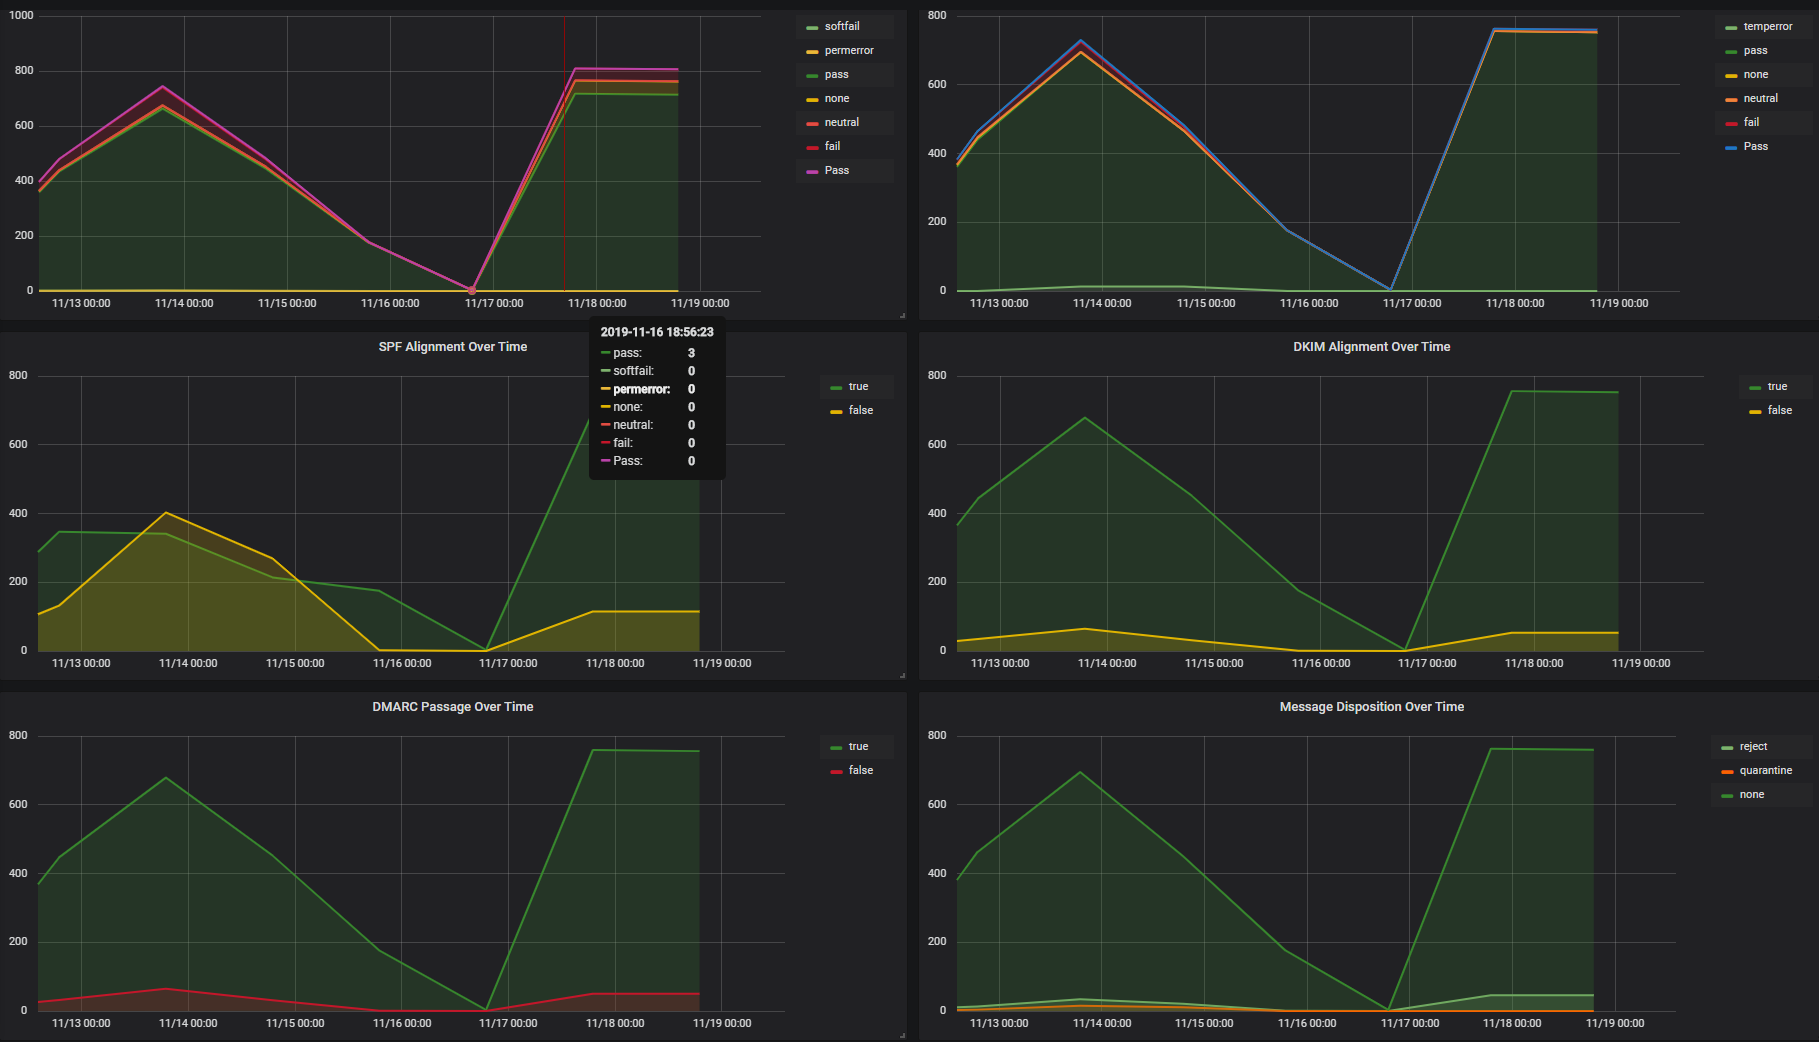 DMARC Report Status Over Time